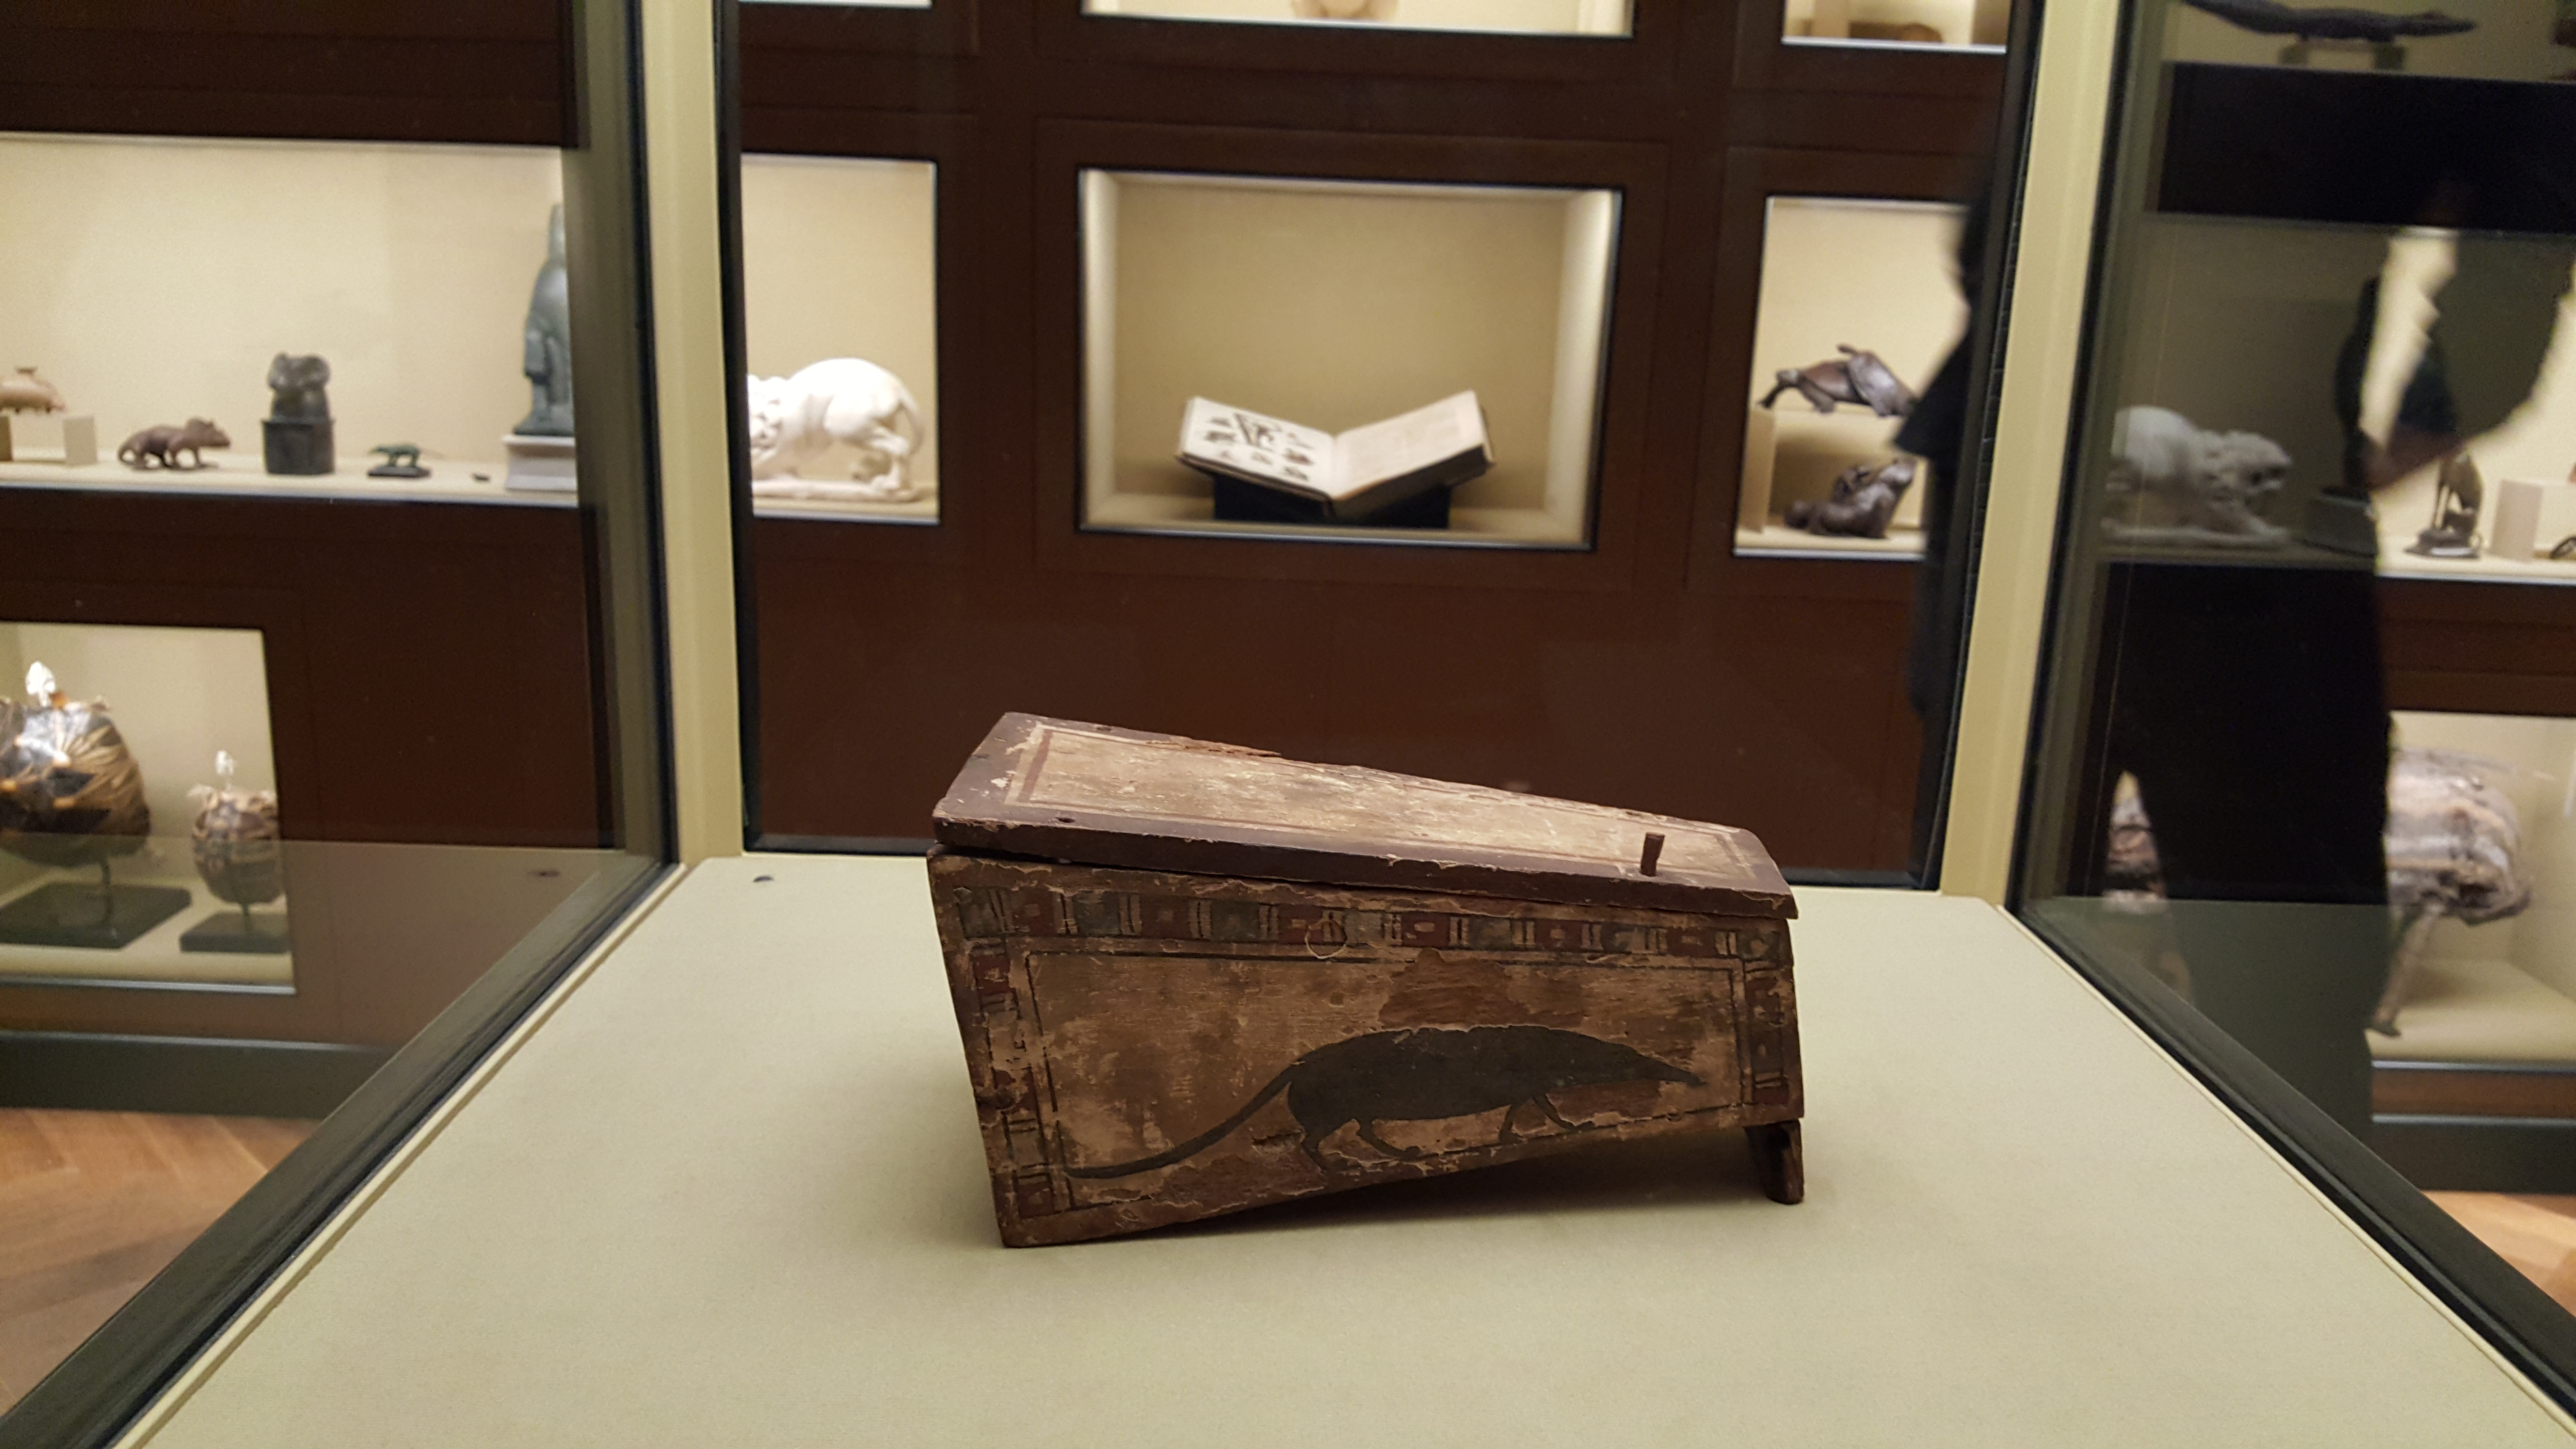 The piece for which the exhibit is named. Spizmaus Mummy in a Coffin. (The spitzmaus wasn't actually inside.)